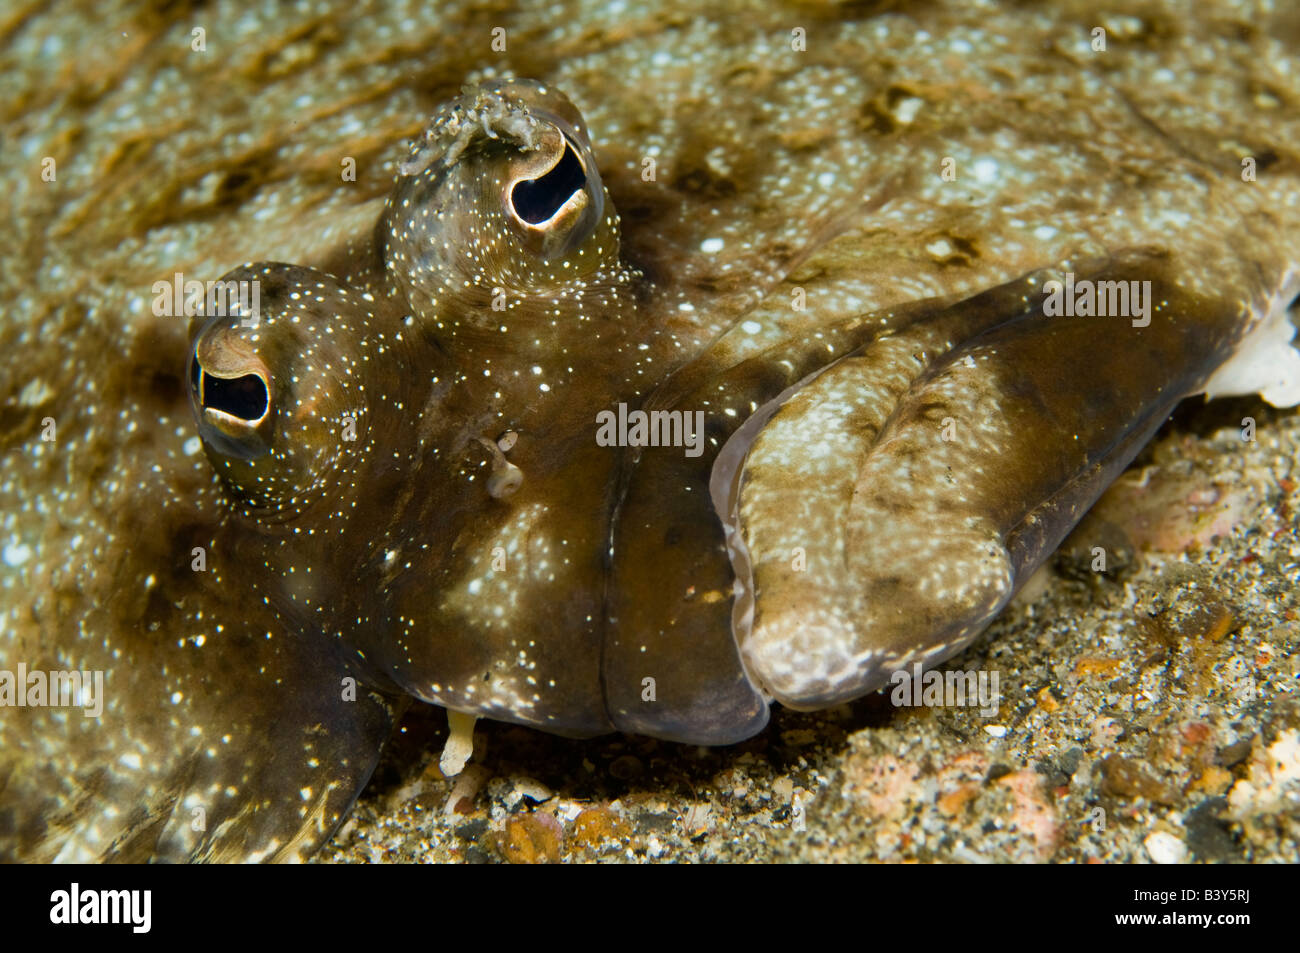 Unidentified left eye flounder in Lembeh Strait Indonesia - Stock Image